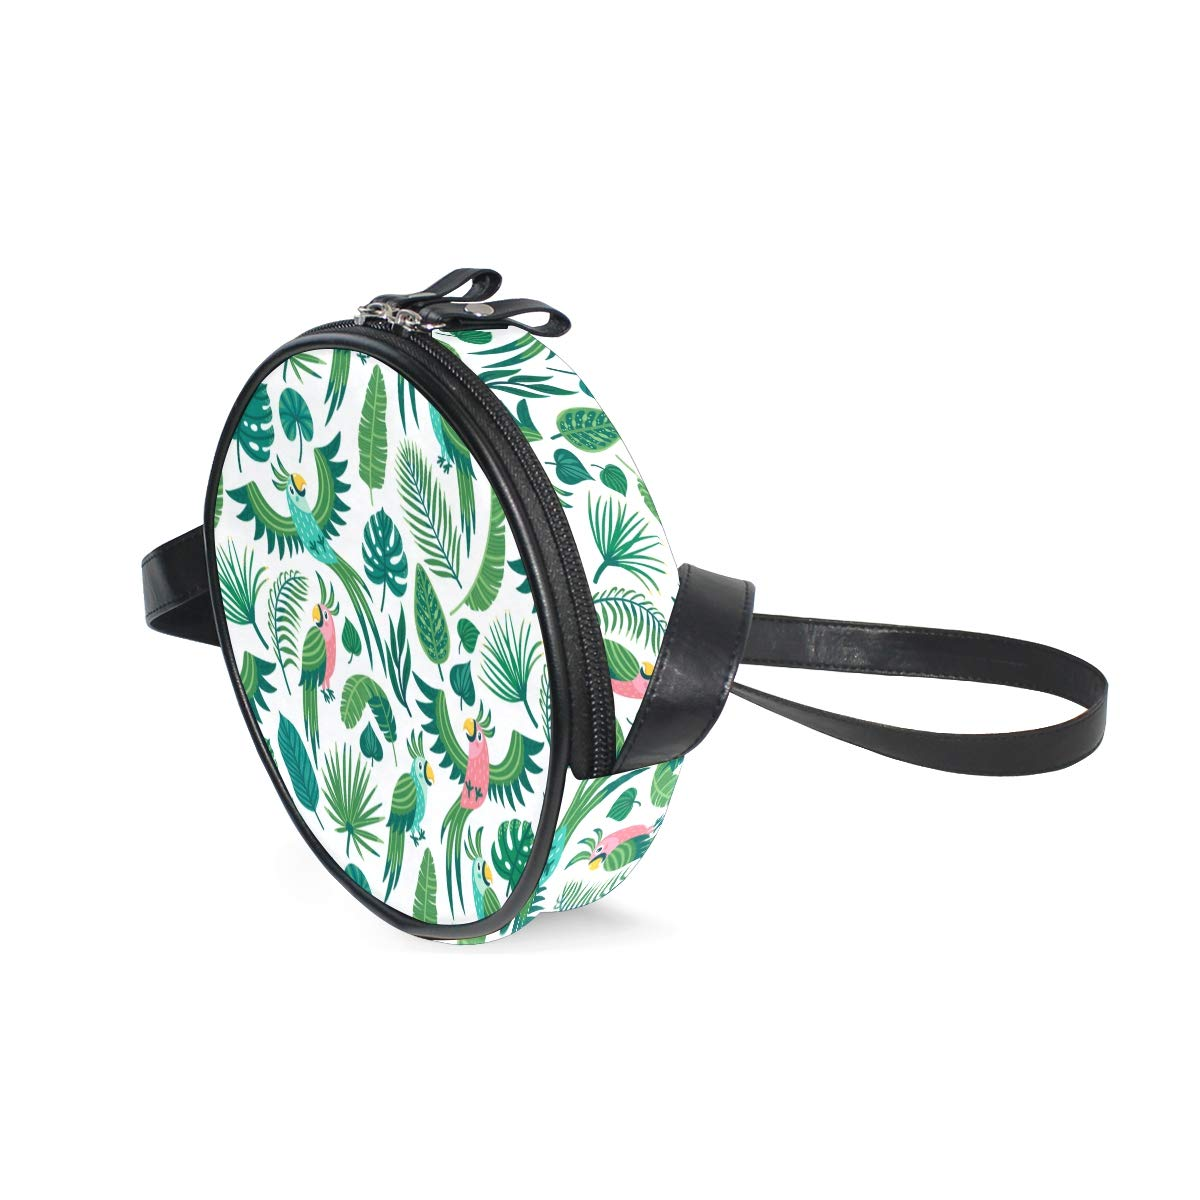 Colorful Summer Background With Cute Parrots And Palm Leaves Super Cute Design Small Canvas Messenger Bags Shoulder Bag Round Crossbody Bags Purses for Little Girls Gifts